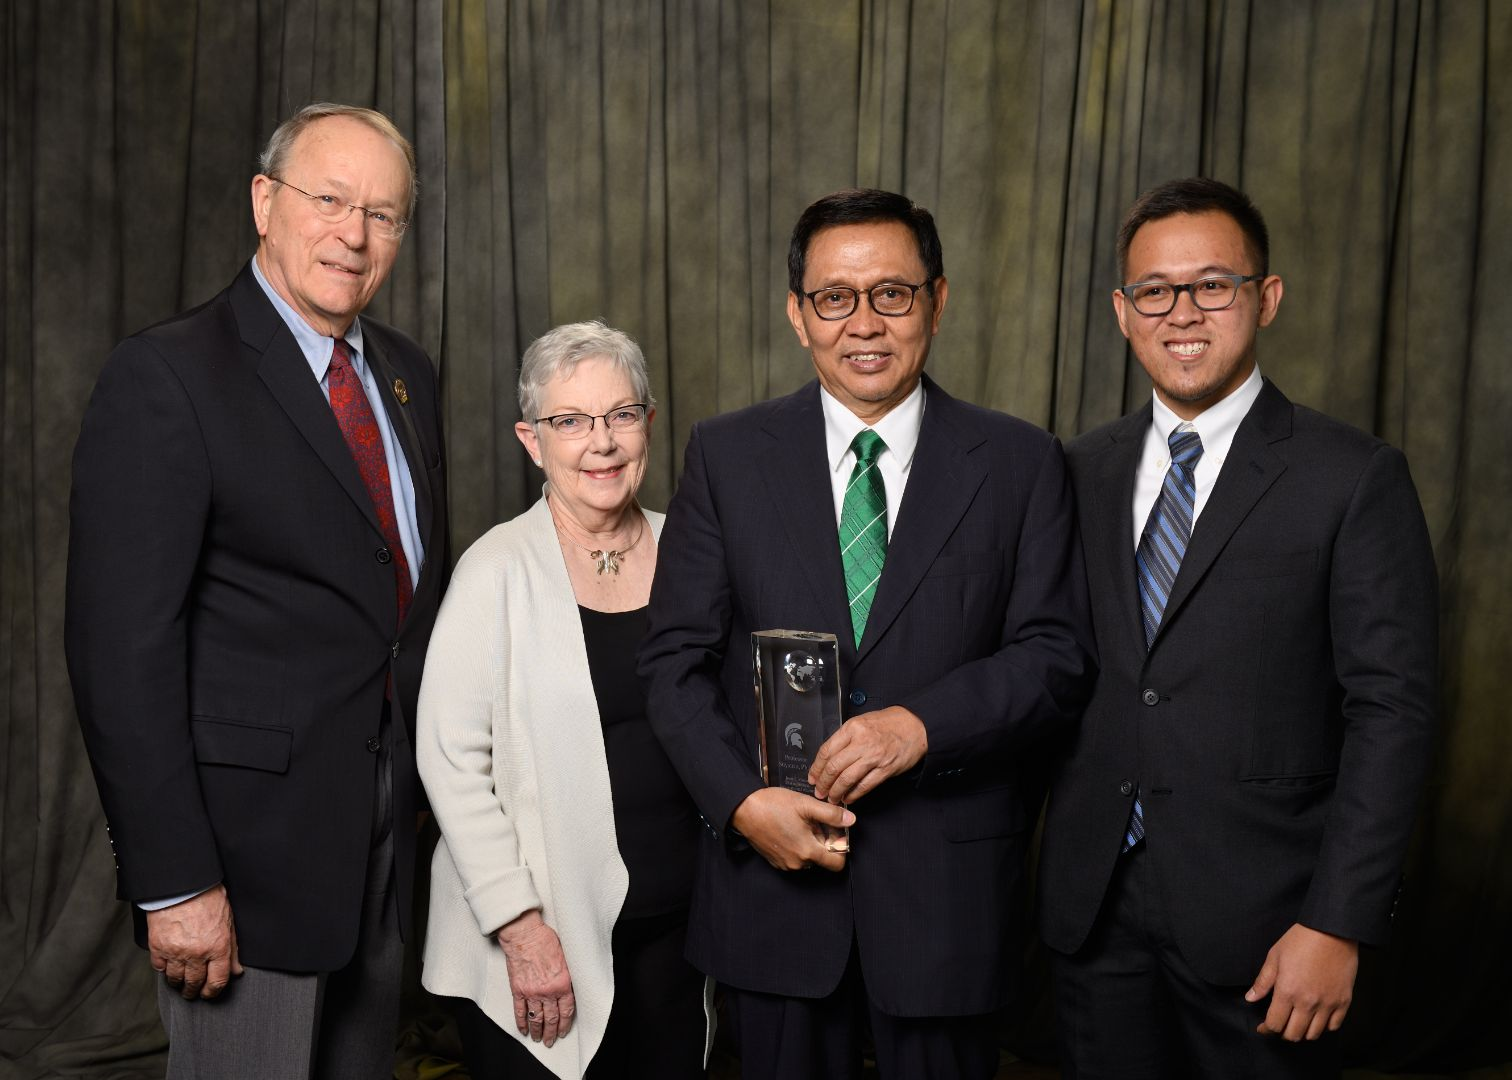 Award recipient Suyanto [male] is pictured center in green tie holding award with three guests